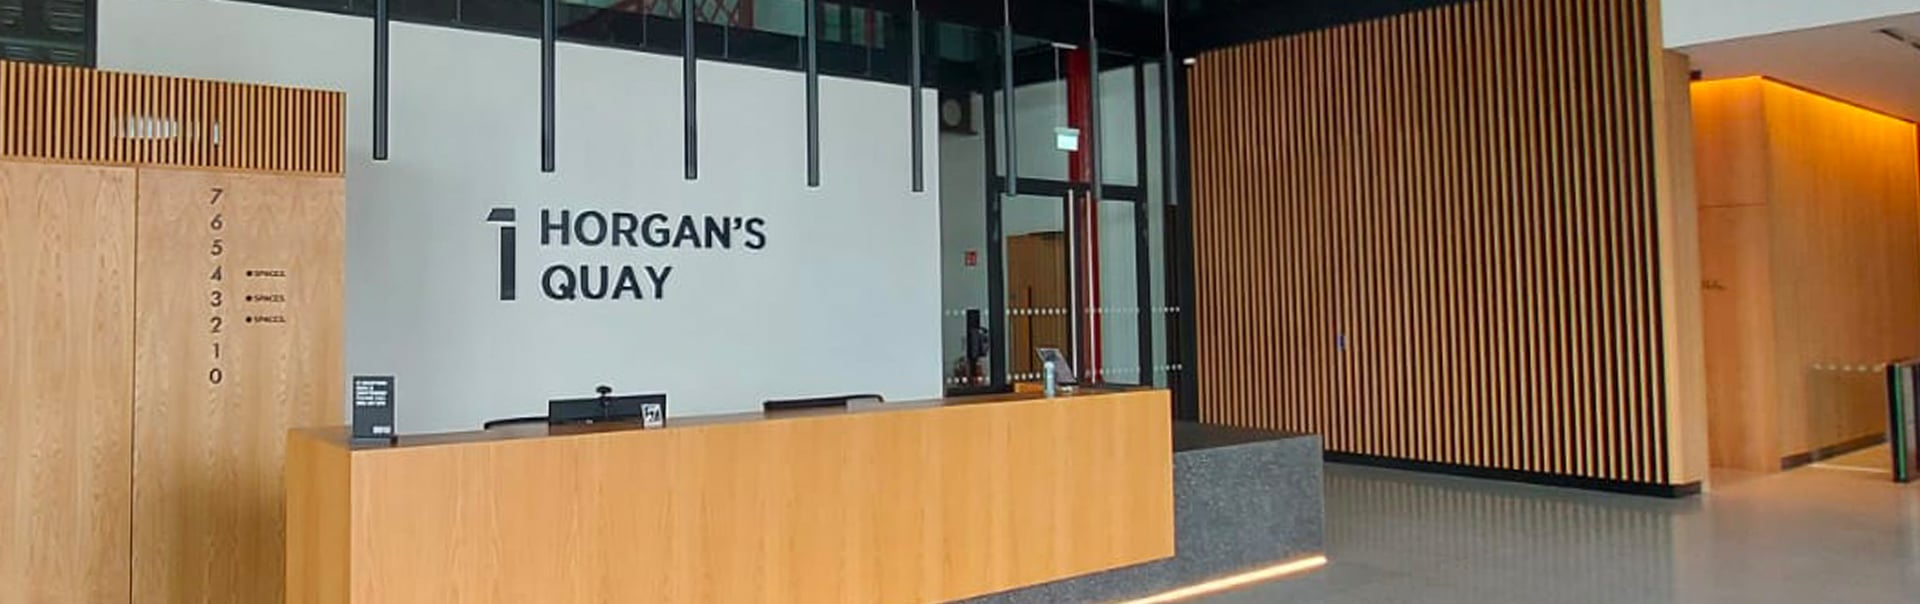 Horgan's Quay directory and reception sign in painted stainless steel lettering.